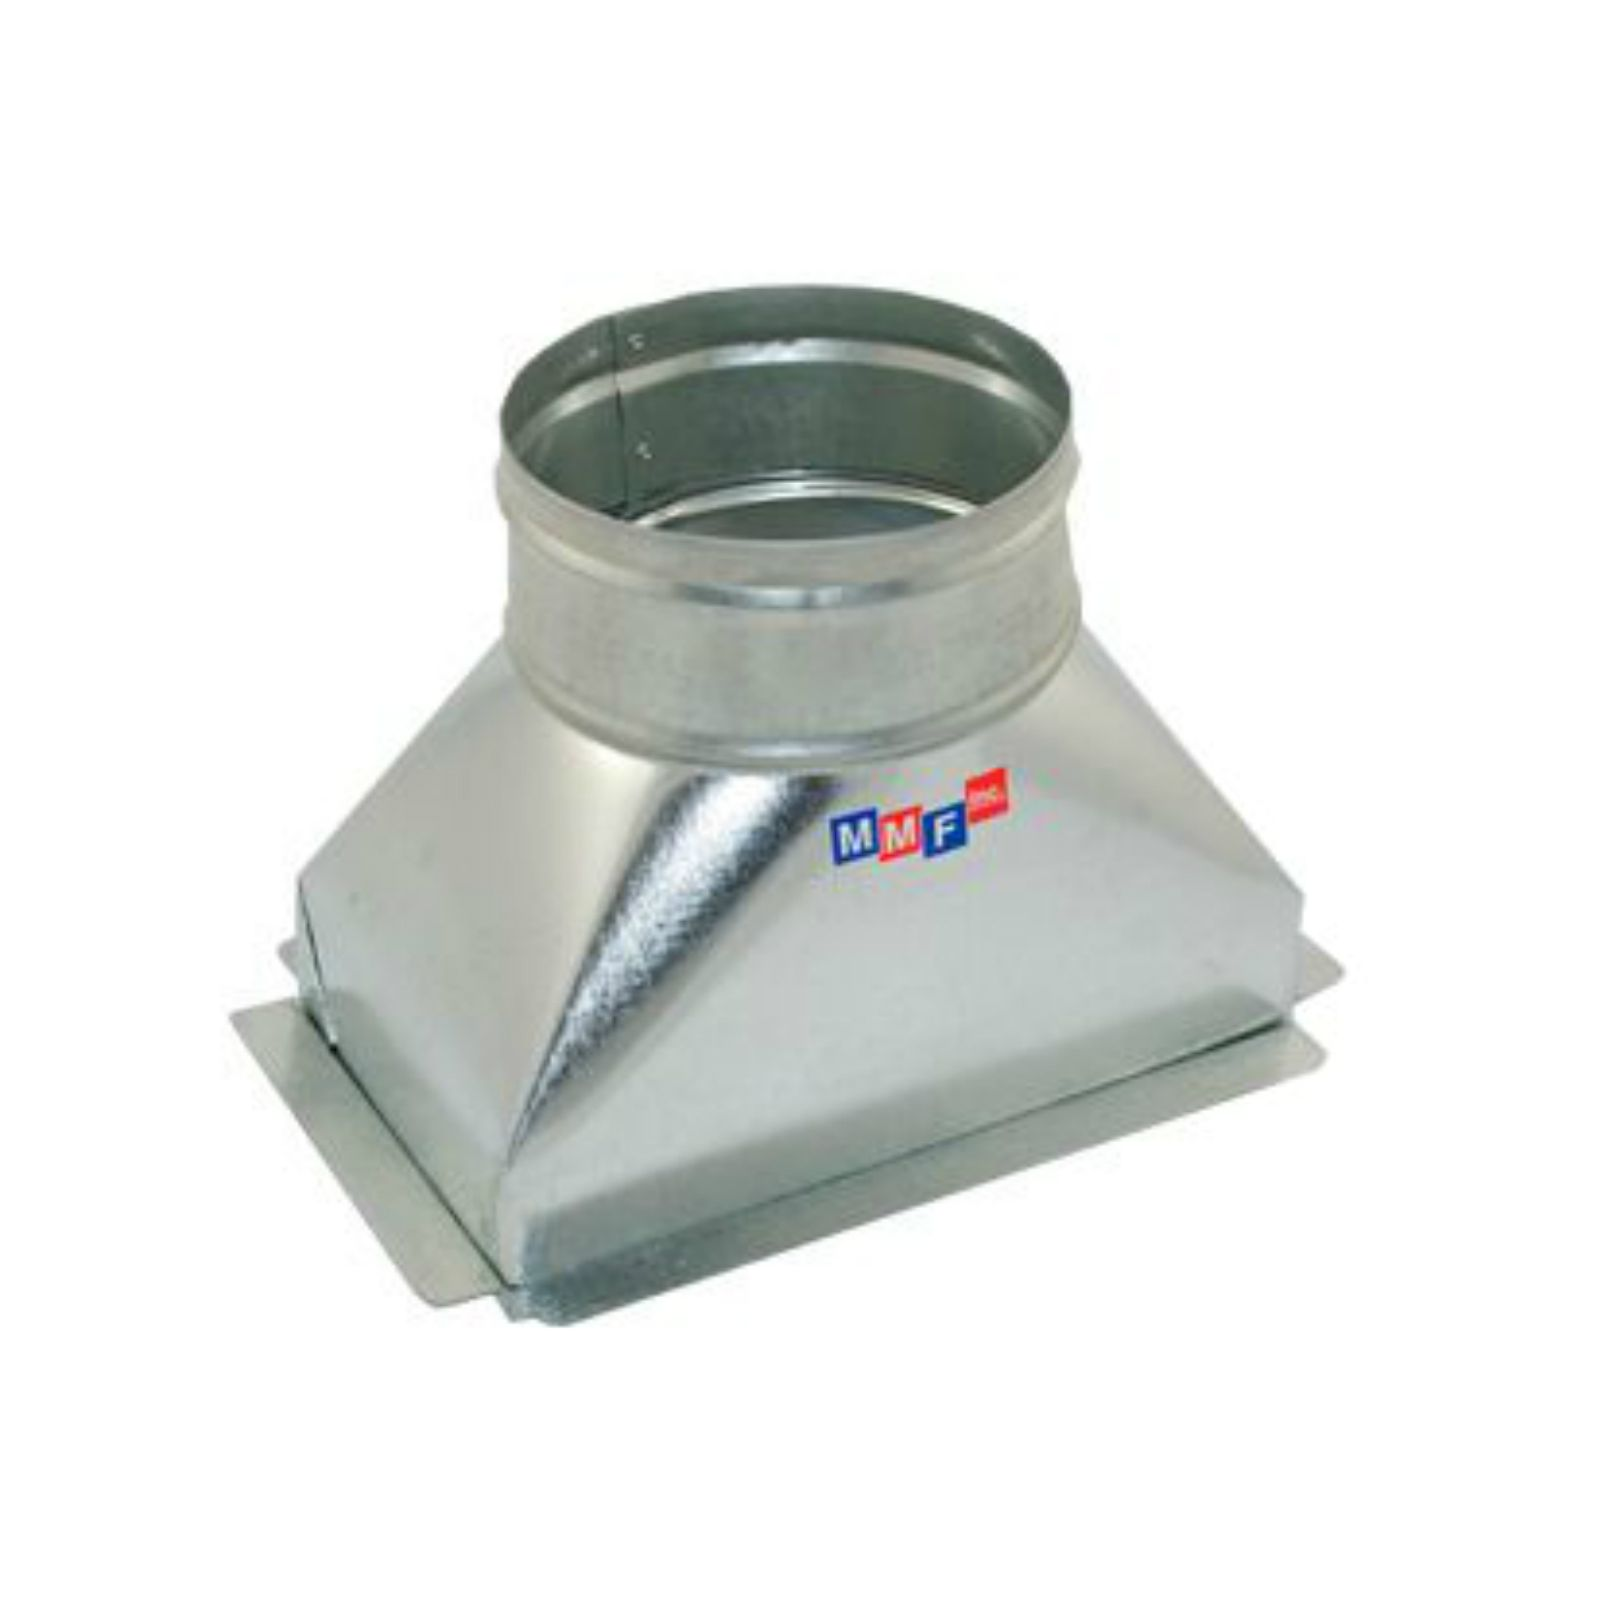 "Modular Metal BTSFI100606P - Sealed Floor Box - 26 Gauge - With Plaster Ground Flange 10"" X 06"" To 06"" Round"